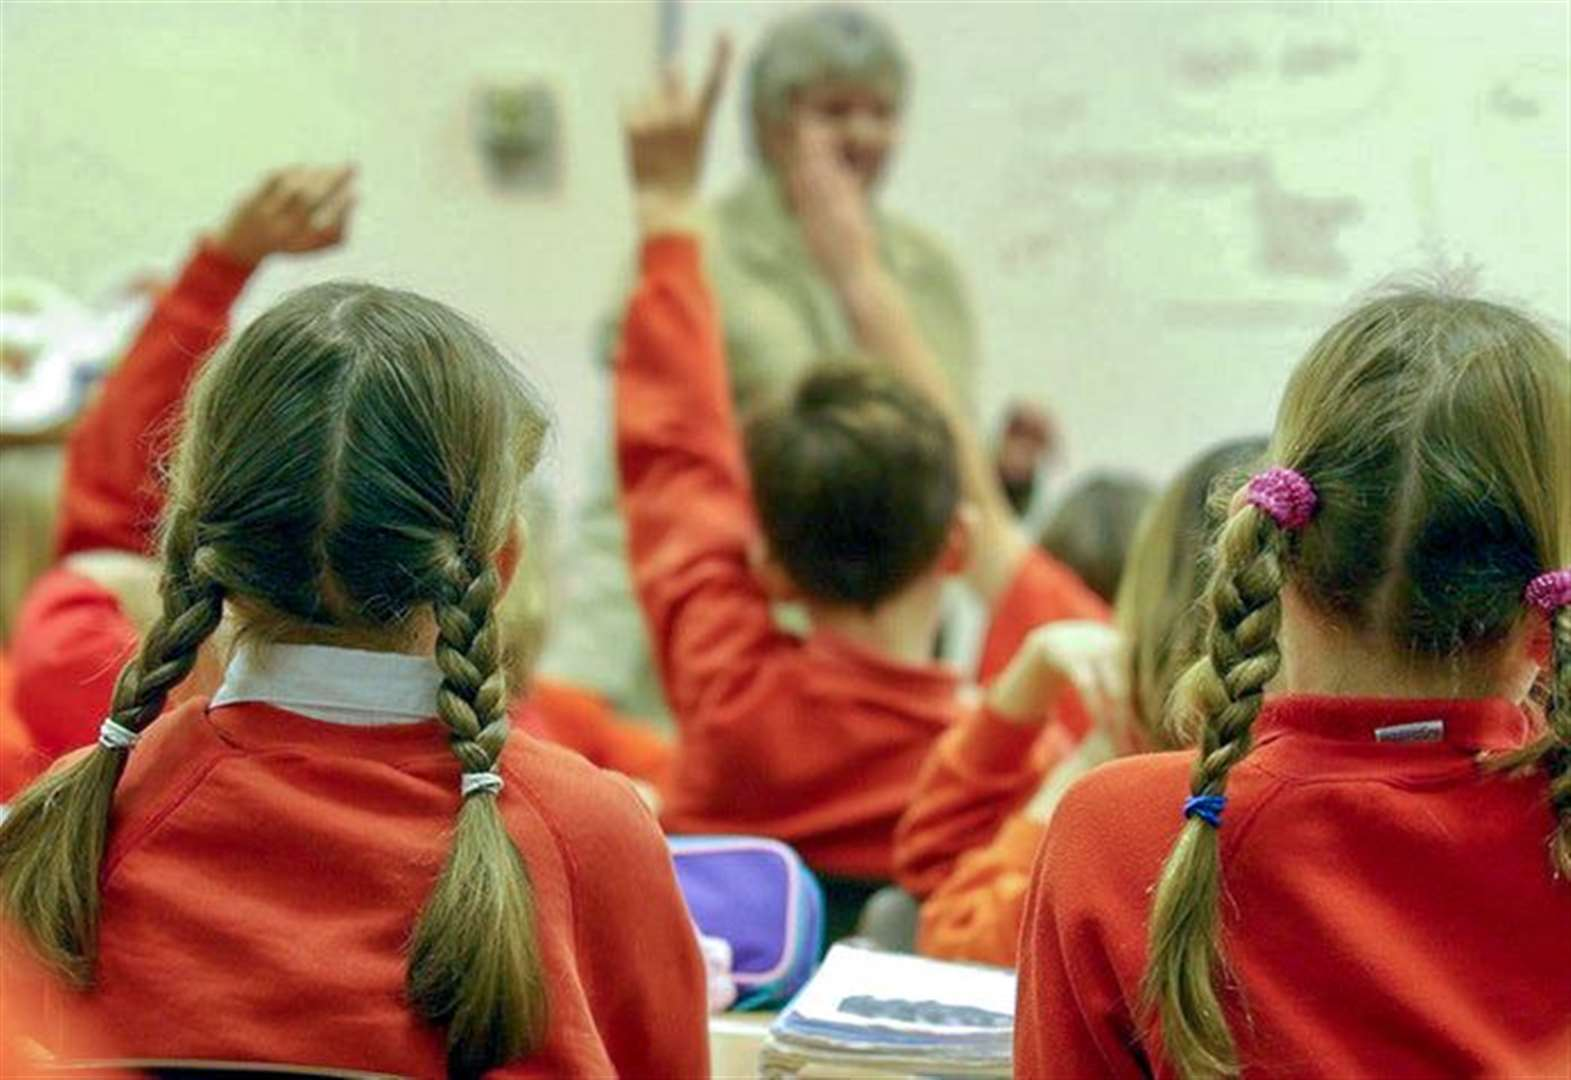 Cambridgeshire has 35 full or overcrowded schools